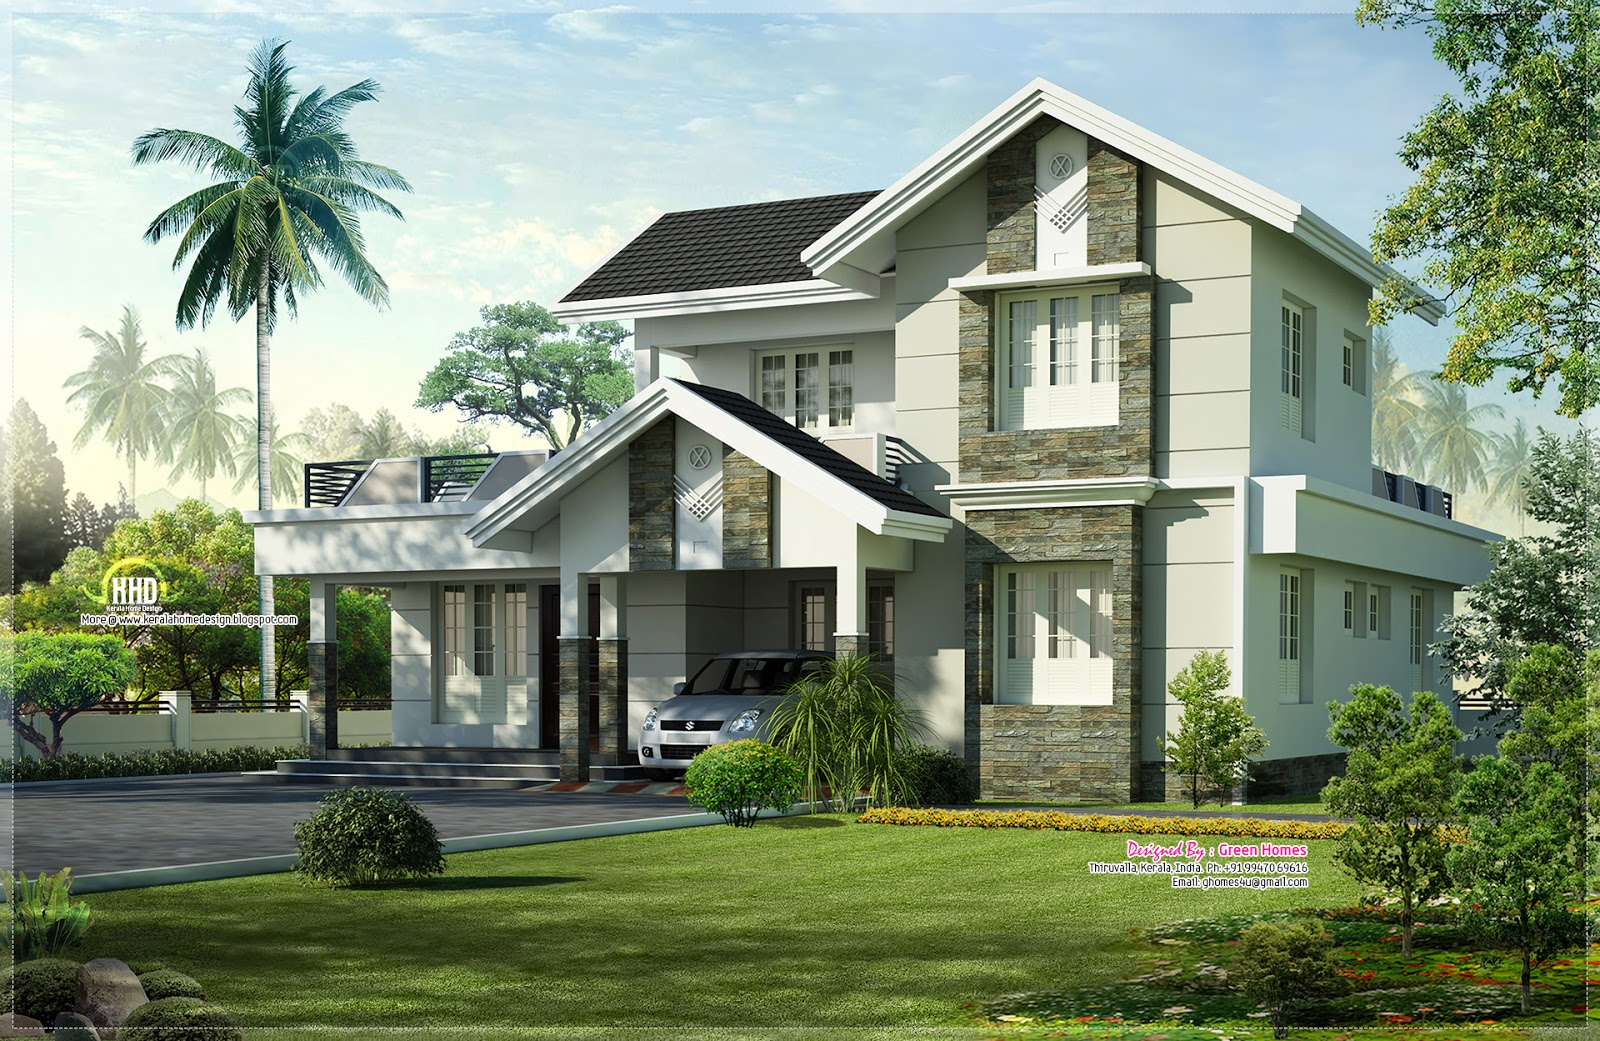 1975 nice home exterior design home kerala plans for House design pictures exterior